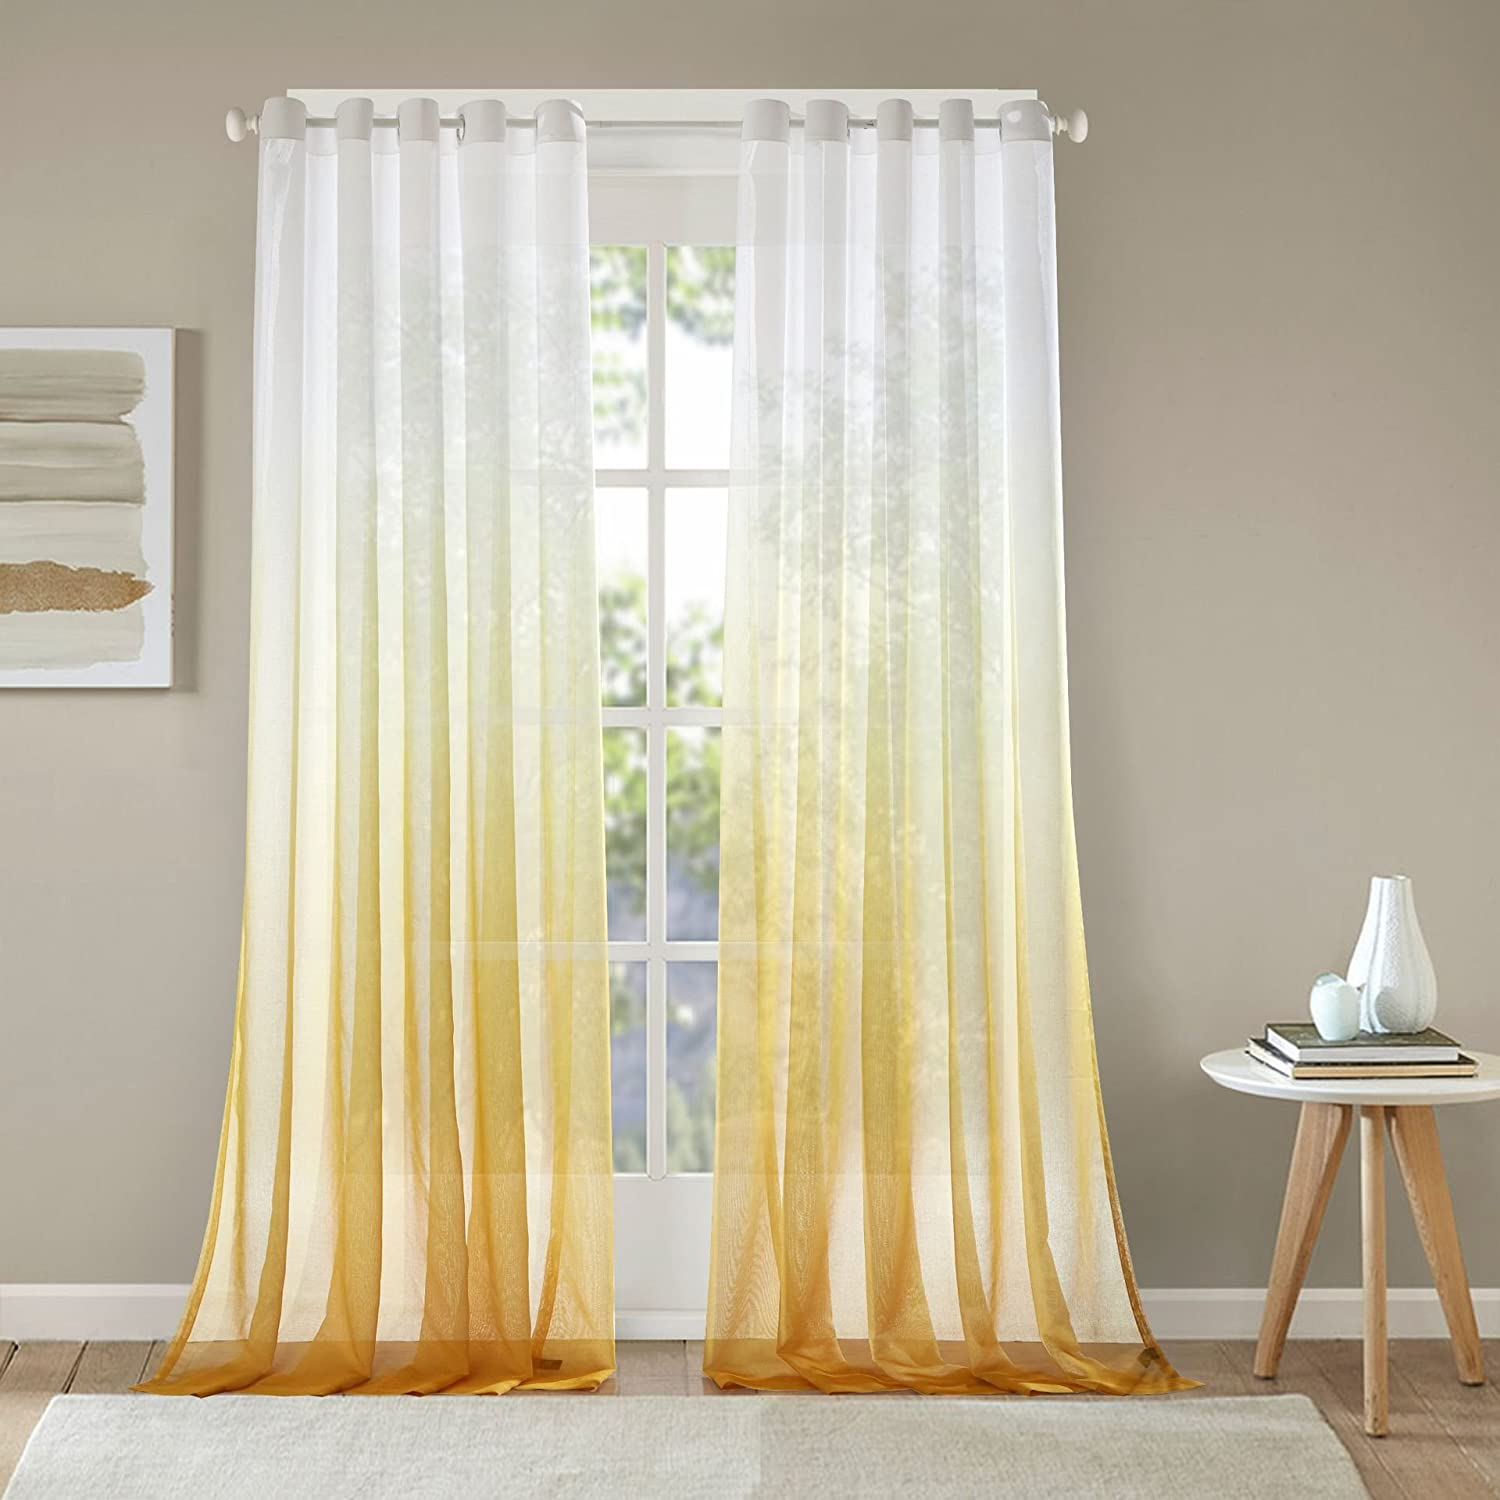 LIYAXUN Grommet Top Transparent Decoration Curtain Printing of Polyester Multi Size Custom Sheer Curtains/Drapes 42 W x 63 L(One Panel),Grey